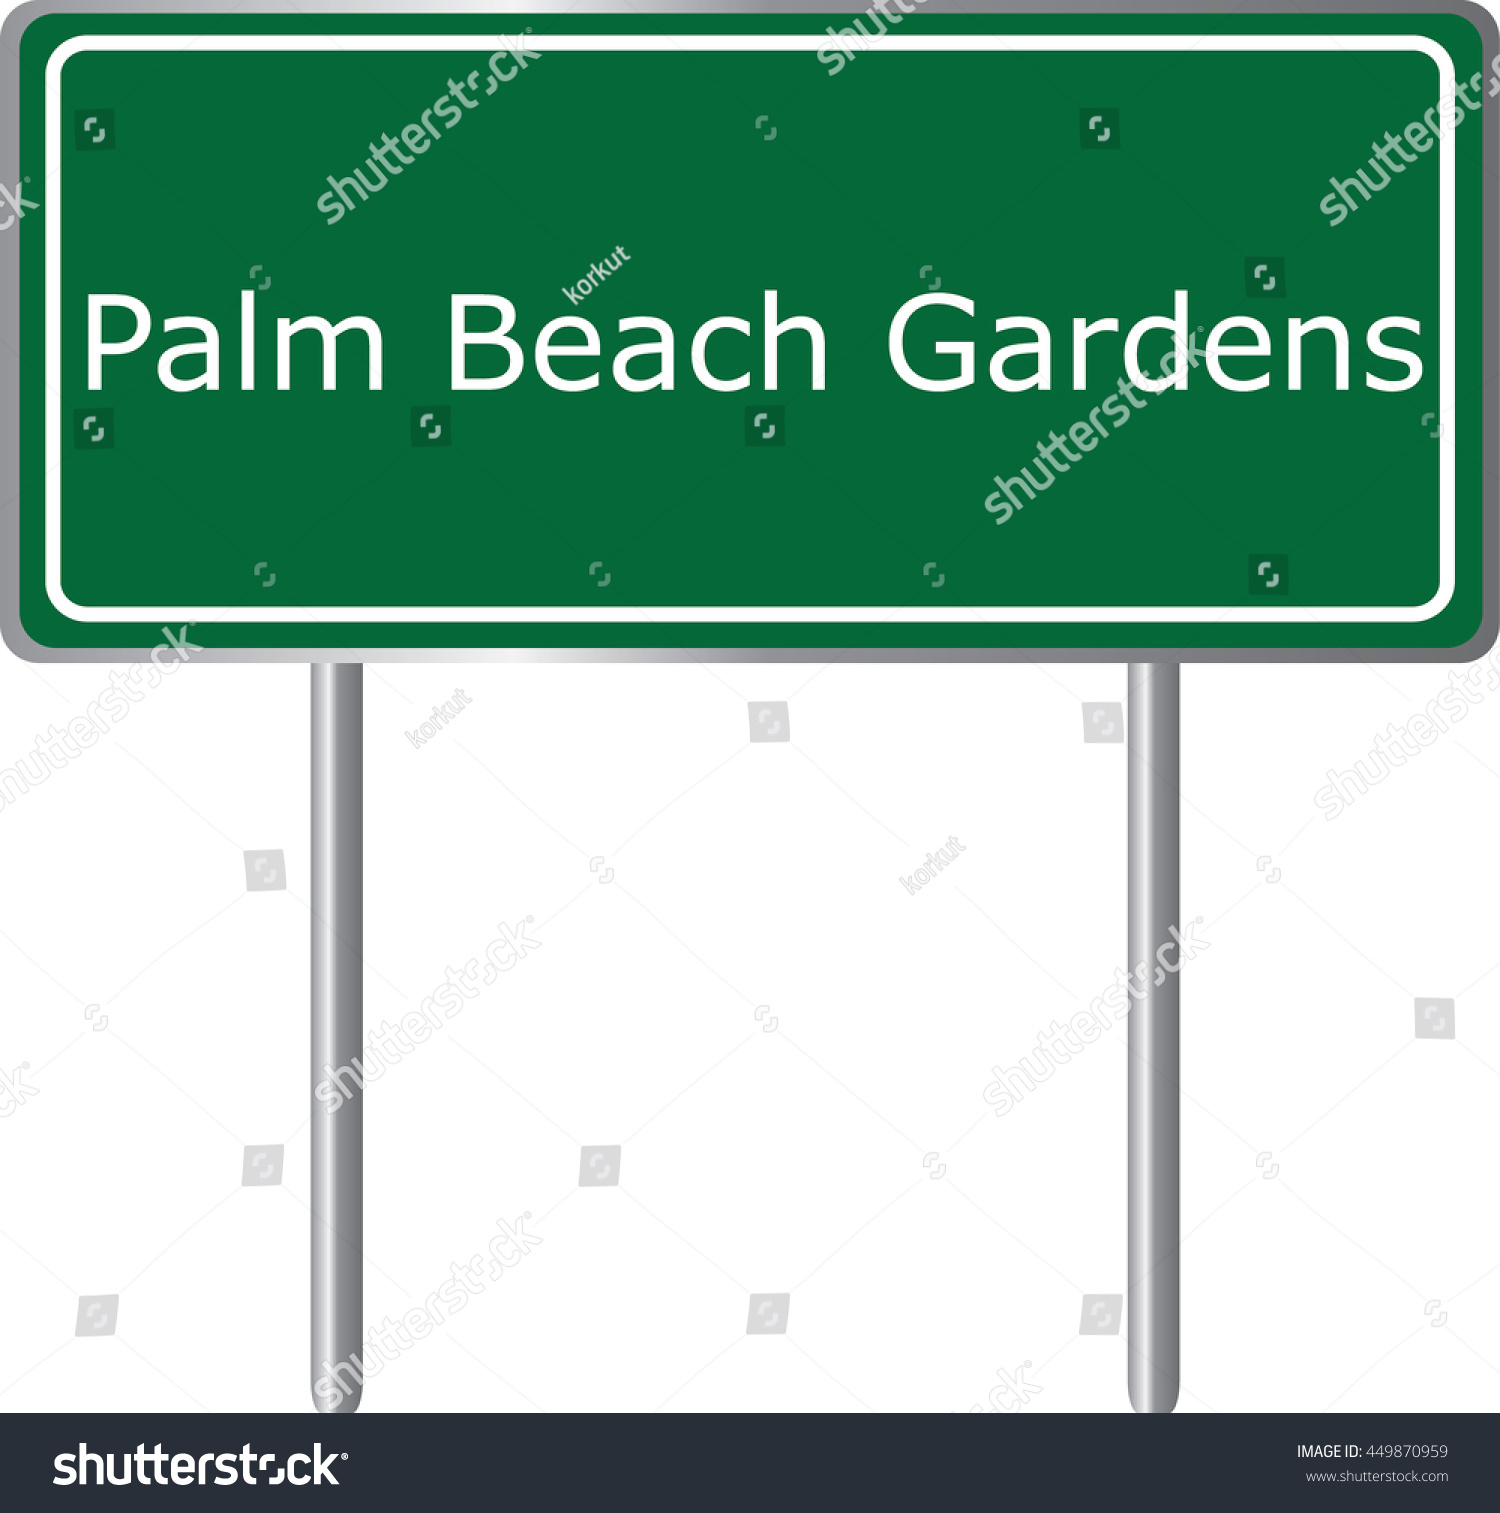 Palm Beach Gardens Florida Road Sign Stock Vector 449870959 ...